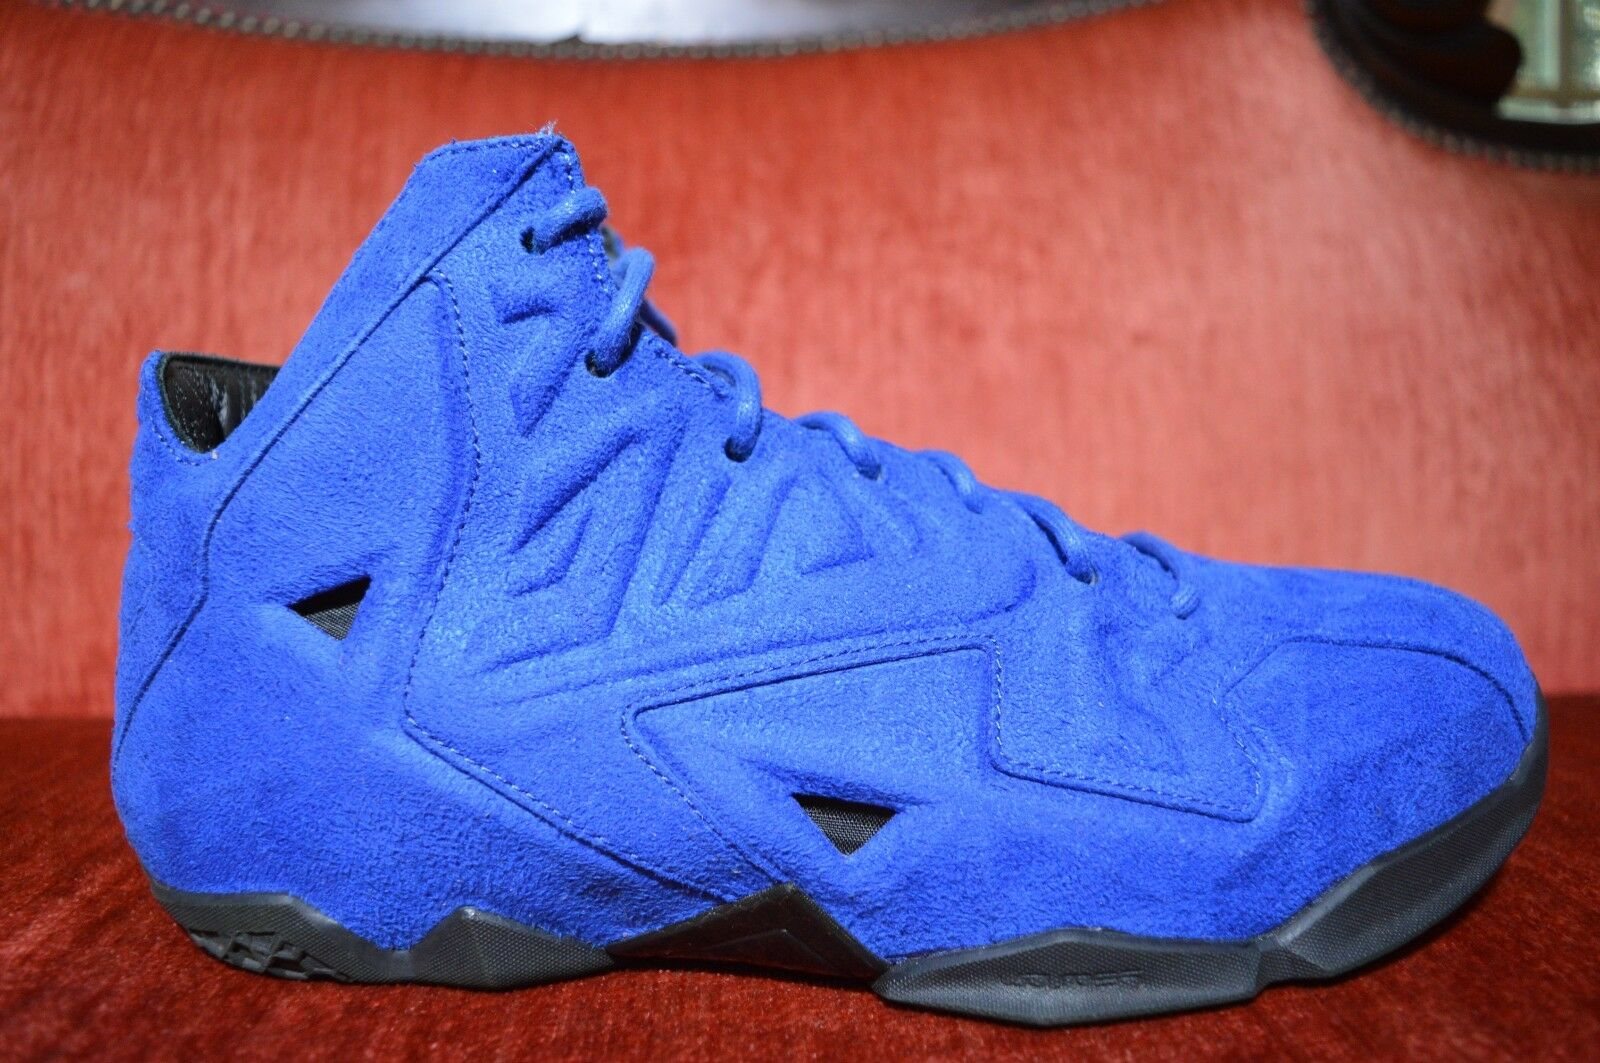 WORN 11 2X Nike LeBron 11 WORN XI EXT Blue Suede QS Size 8.5 656274-440 Kyrie MVP Cavs 4428bd